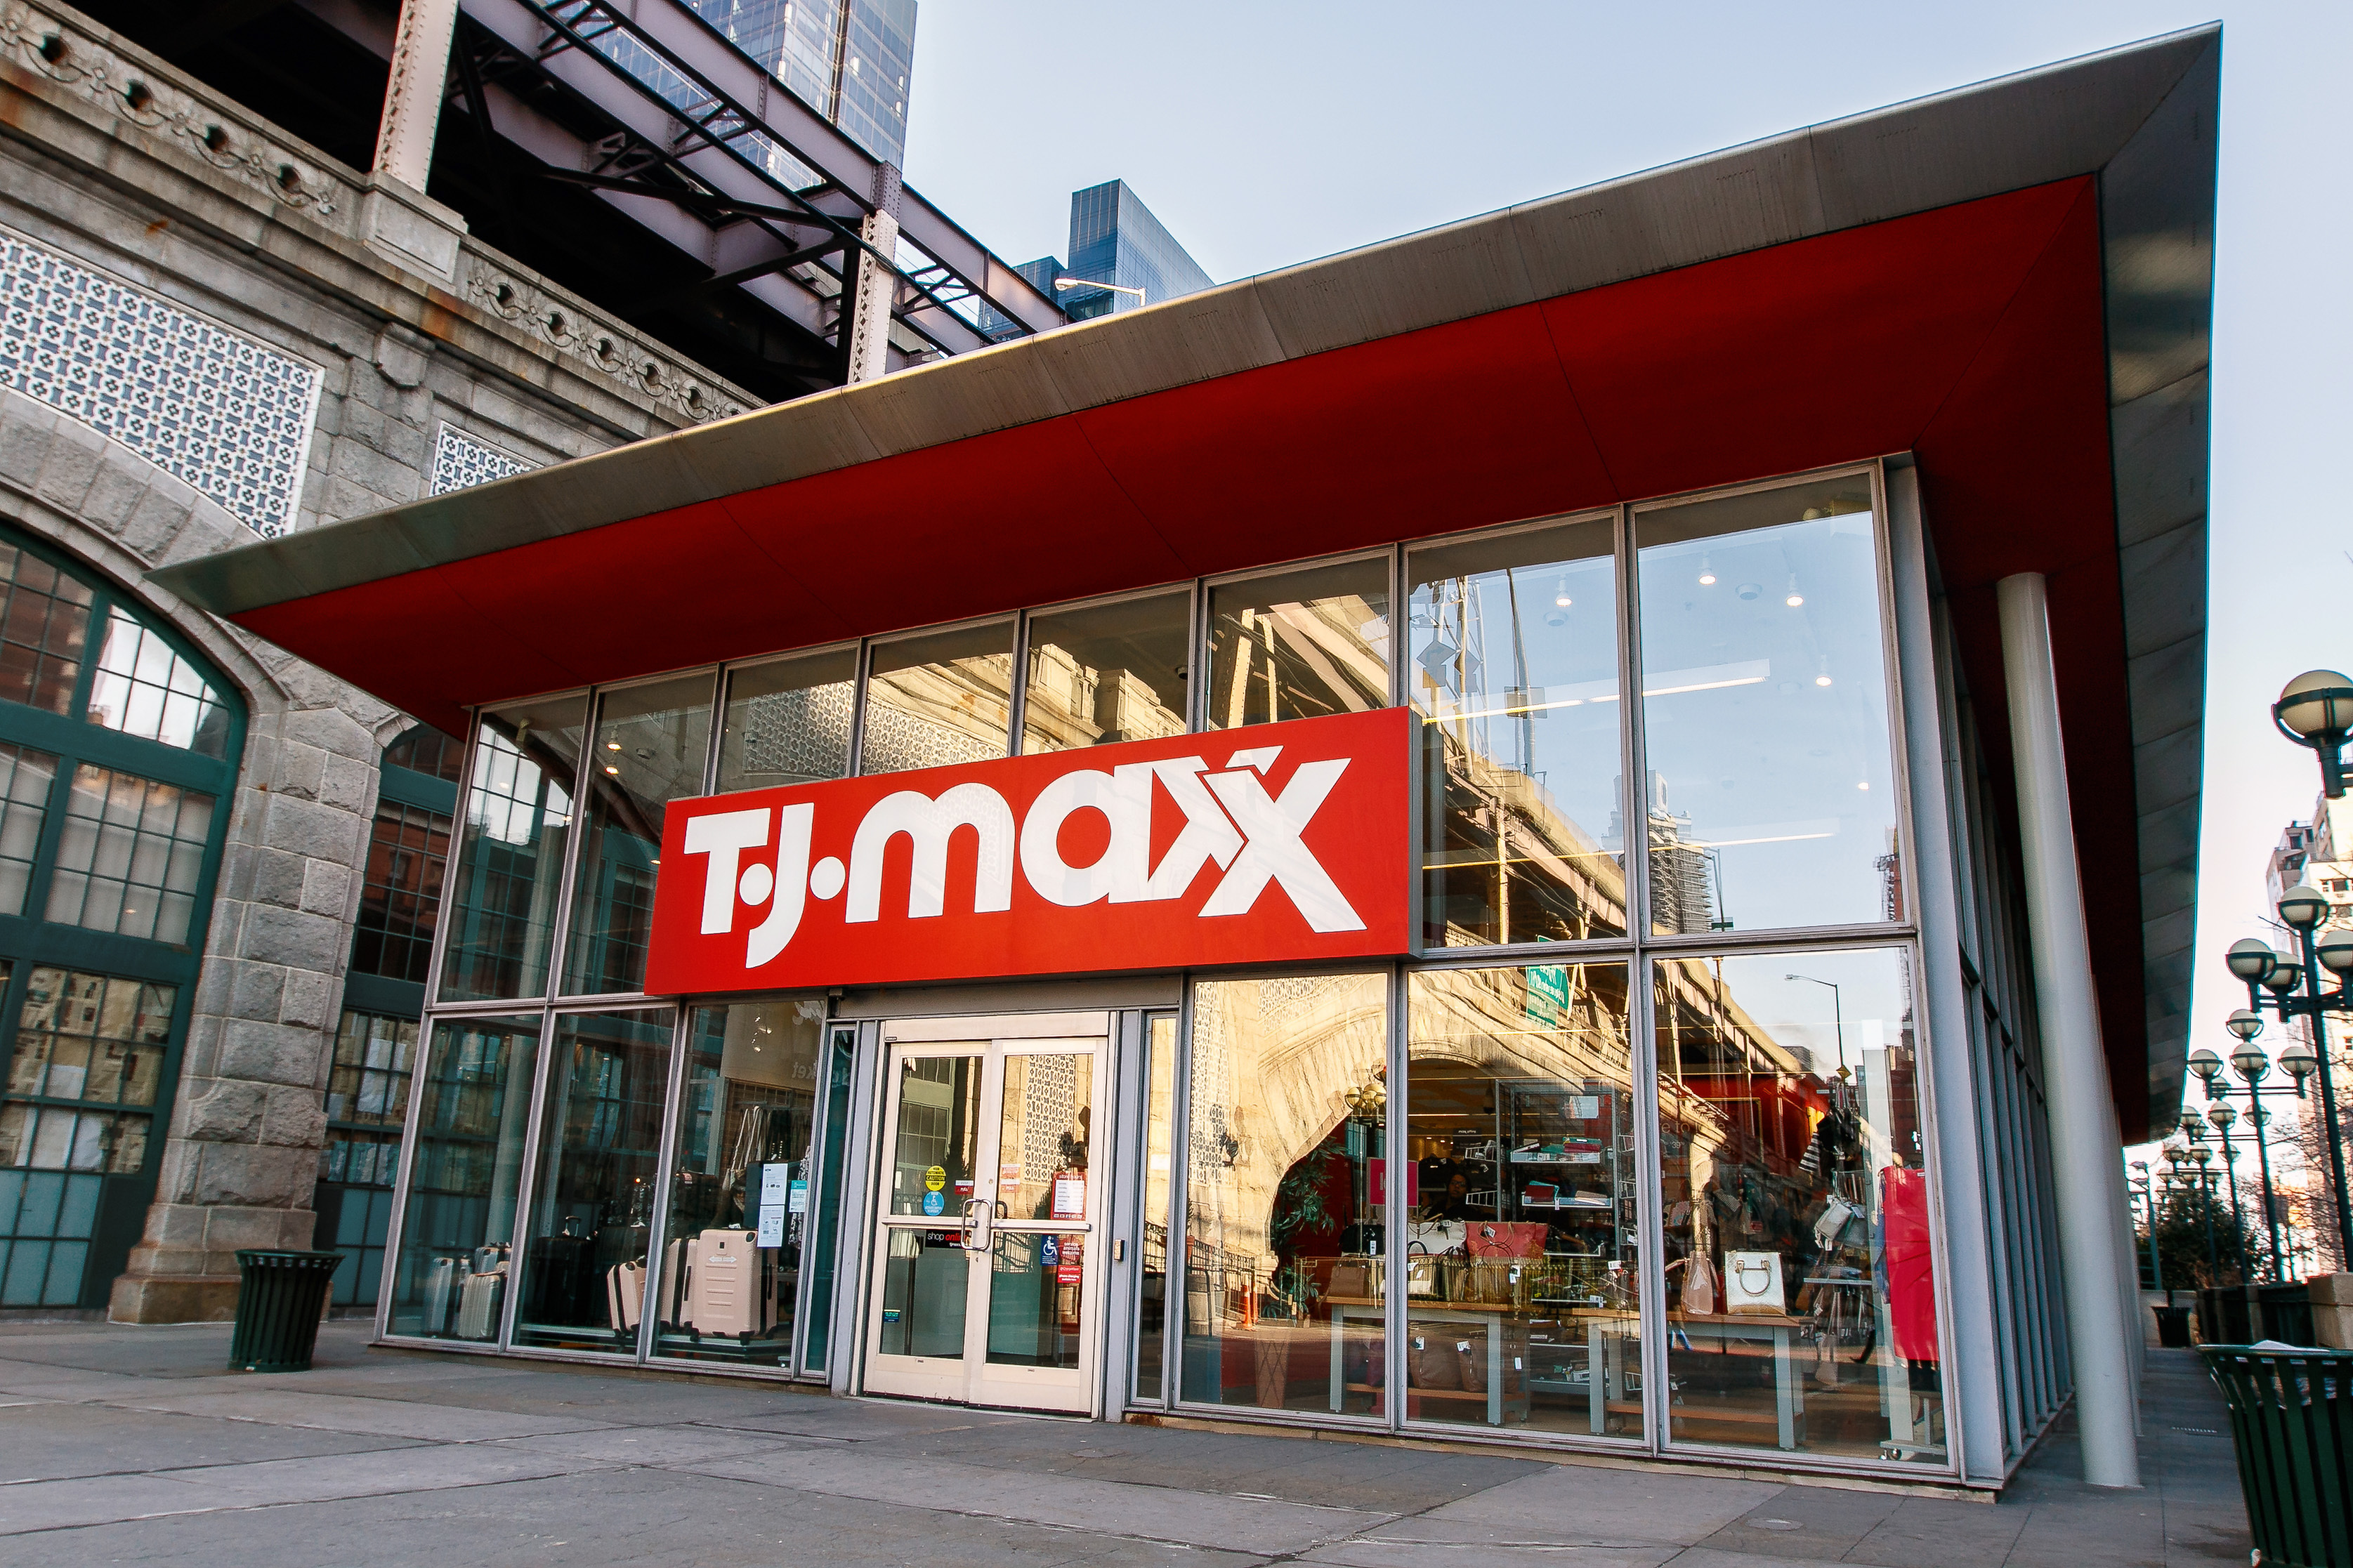 T J Maxx Online Shopping Site - Best Buys | Apartment Therapy